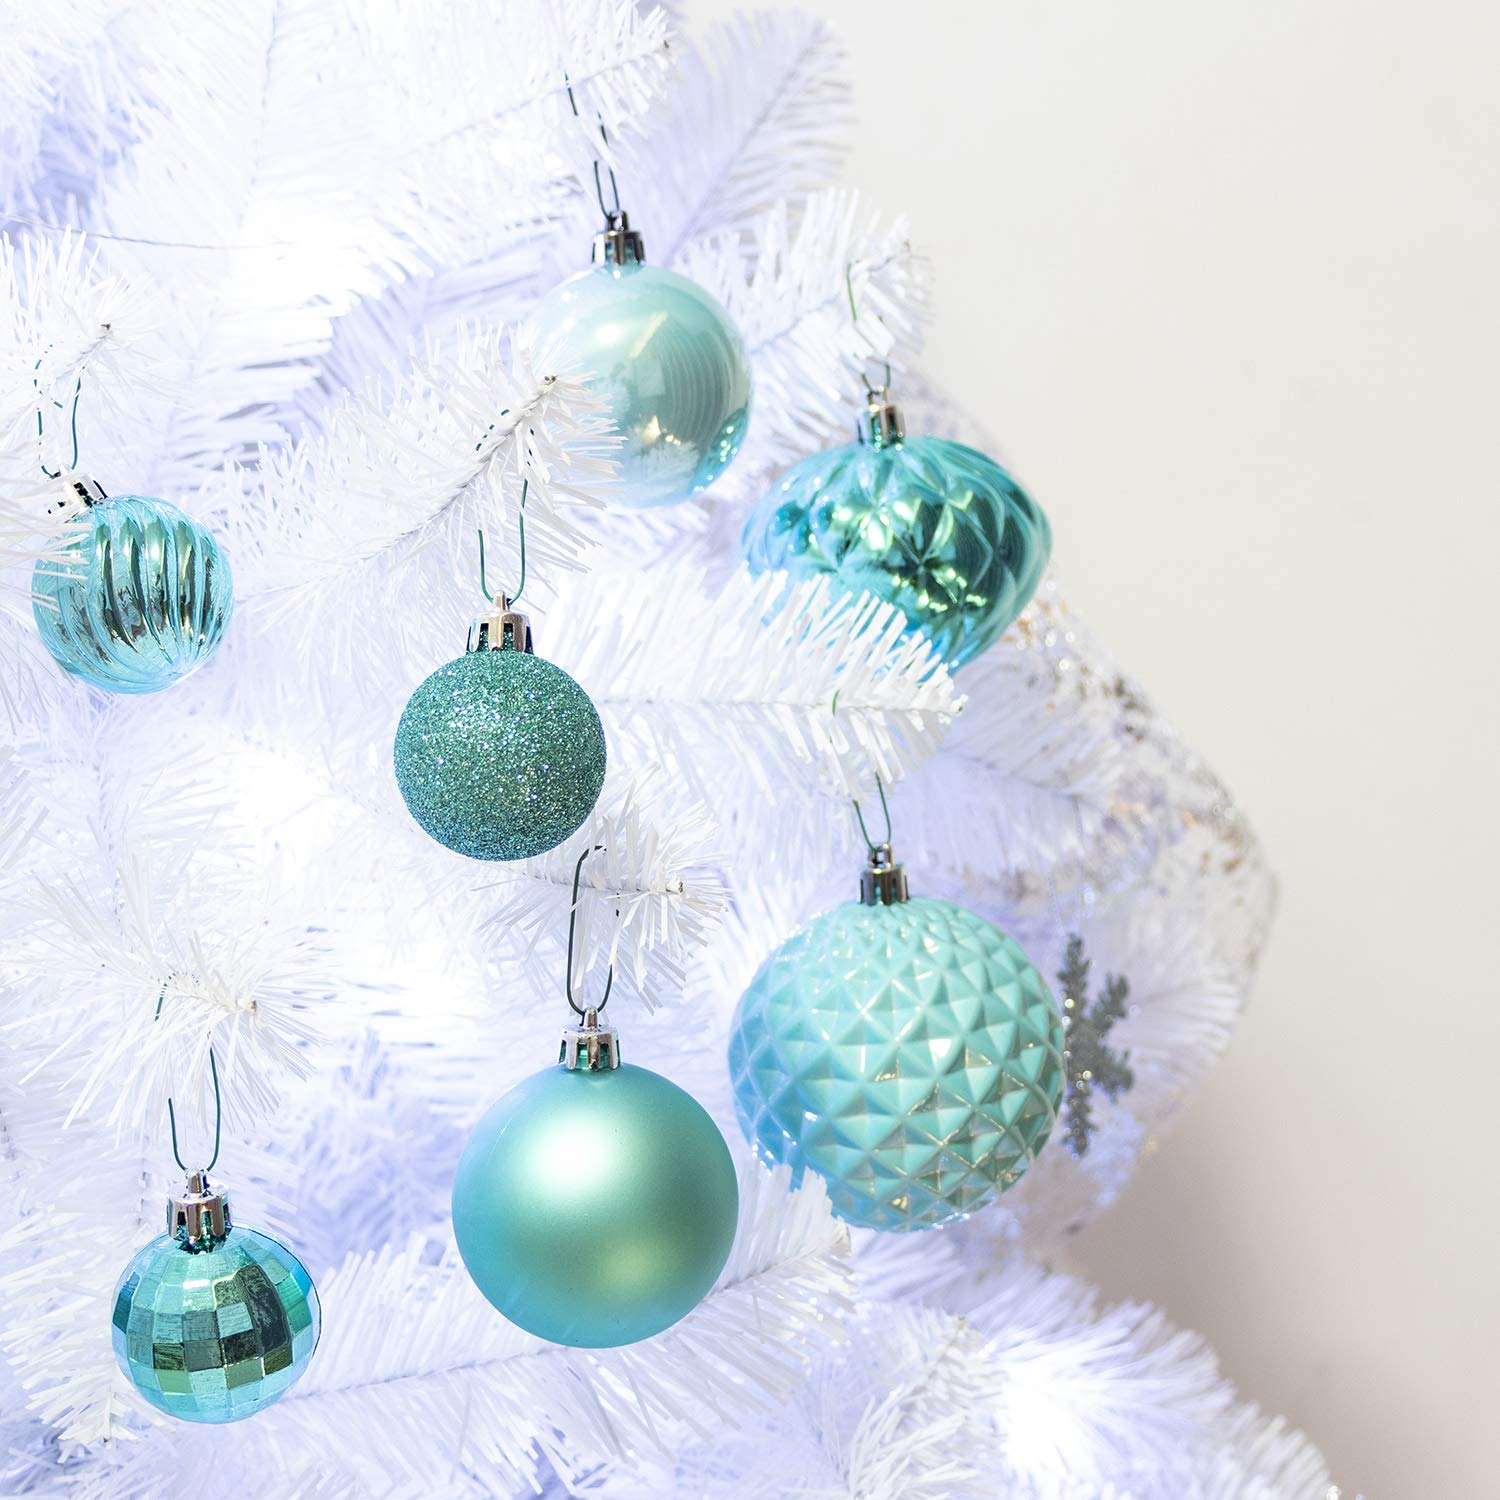 amazoncom ki store 34ct christmas ball ornaments shatterproof christmas decorations tree balls small for holiday wedding party decoration tree ornaments - Teal And Silver Christmas Decorations